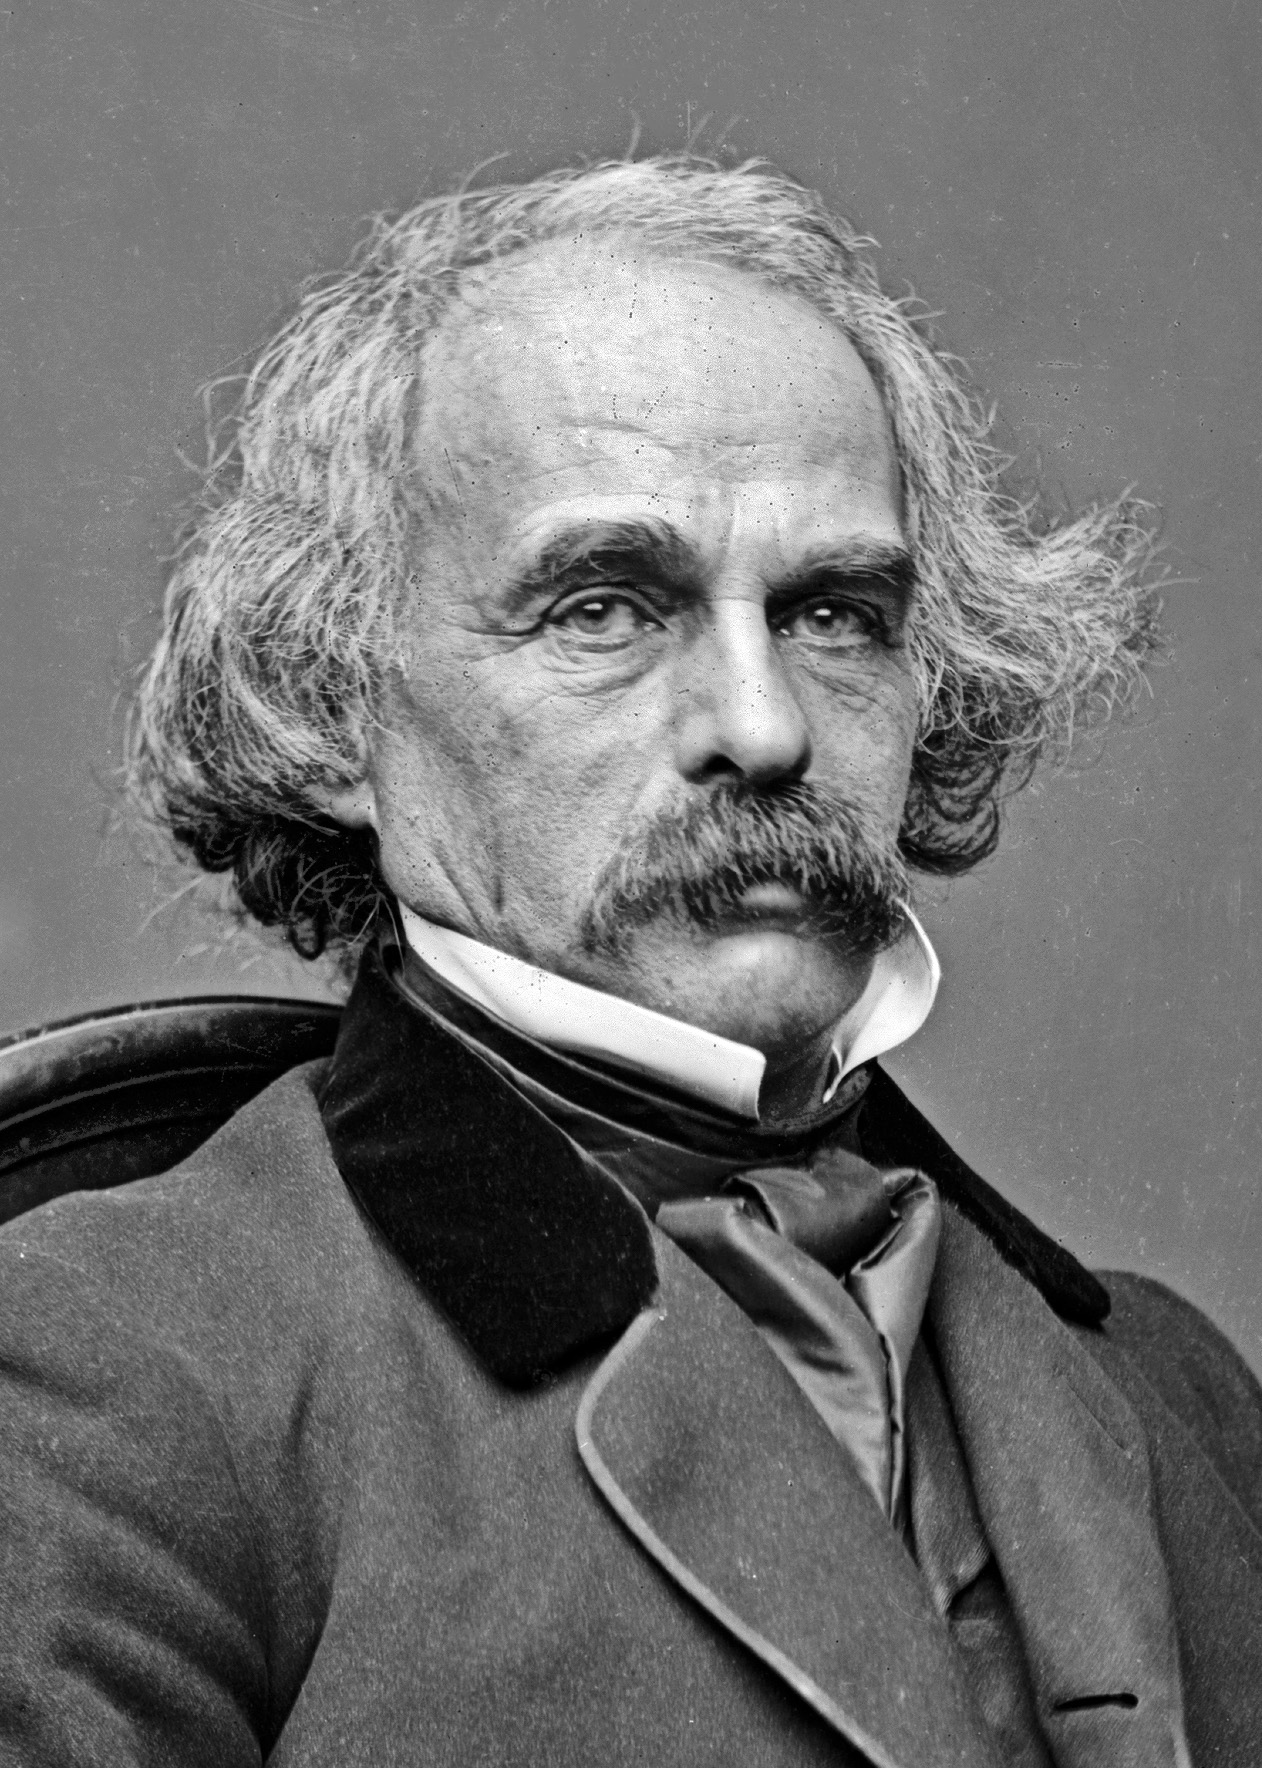 the influence of nathaniel hawthorne on the american literature Start studying american history chapter 12 section 4 river school reflect a change in american art & literature and nathaniel hawthorne- were fascinated.